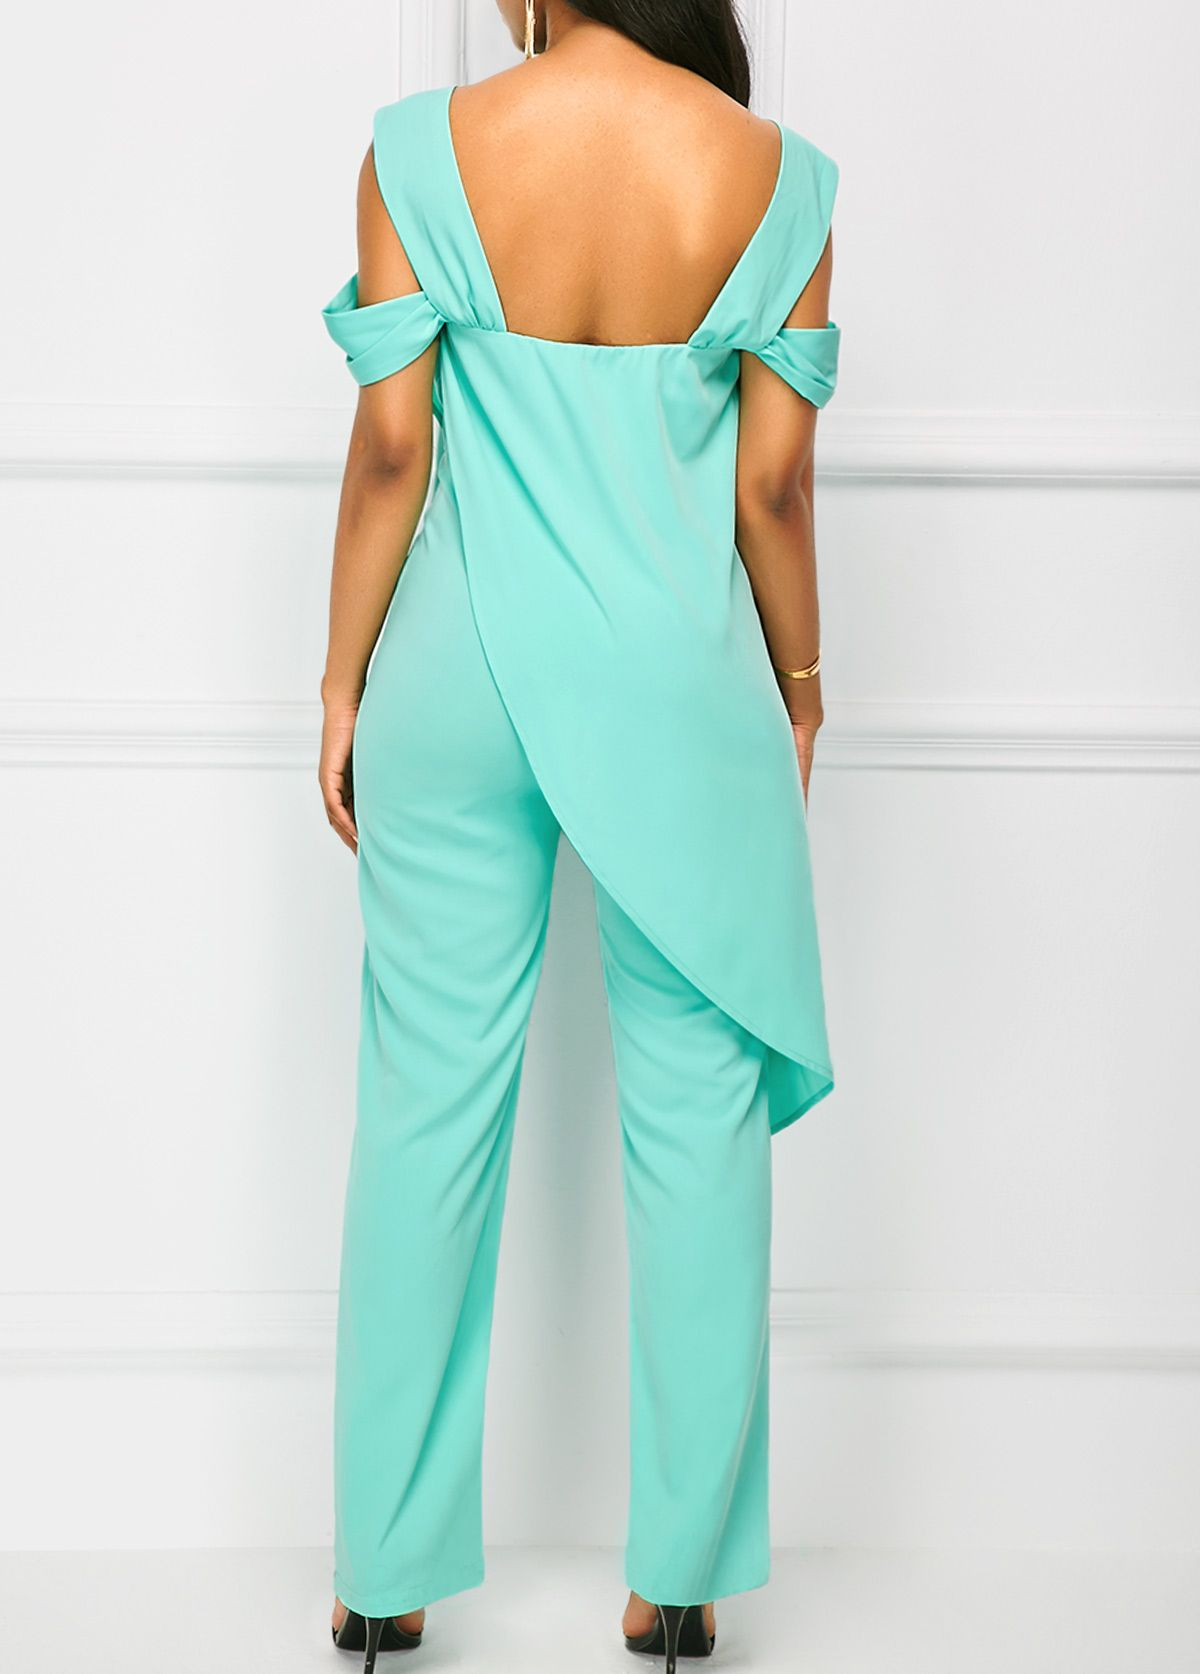 fe78b6661df7 Strappy Cold Shoulder Green Overlay Jumpsuit on sale only US 38.21 ...